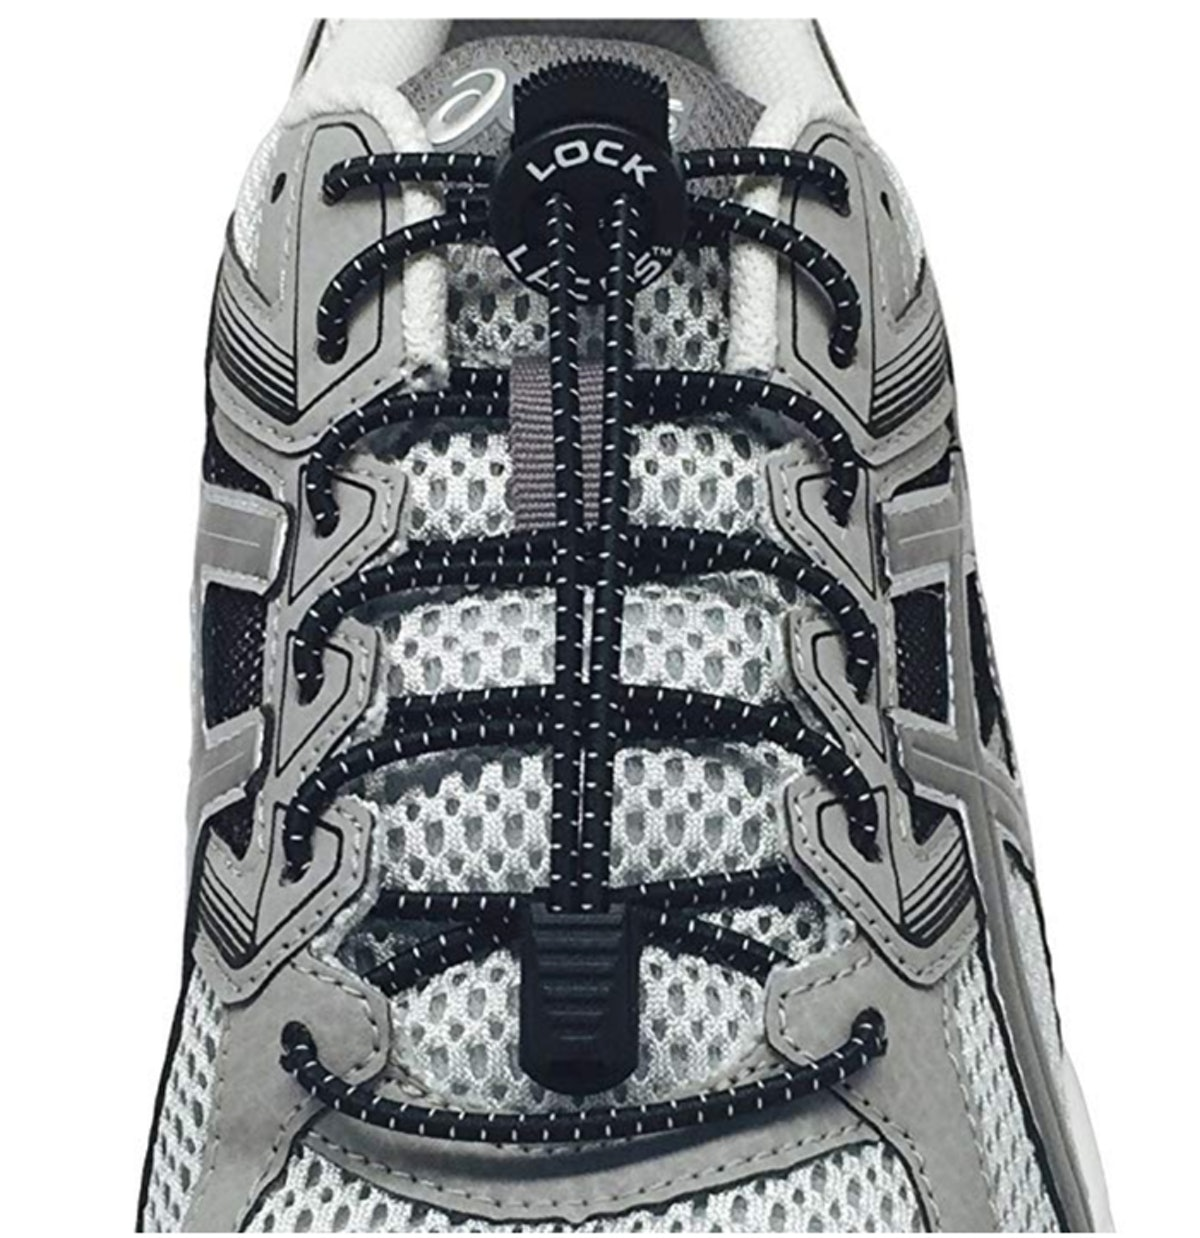 Lock Laces (2 Pack)